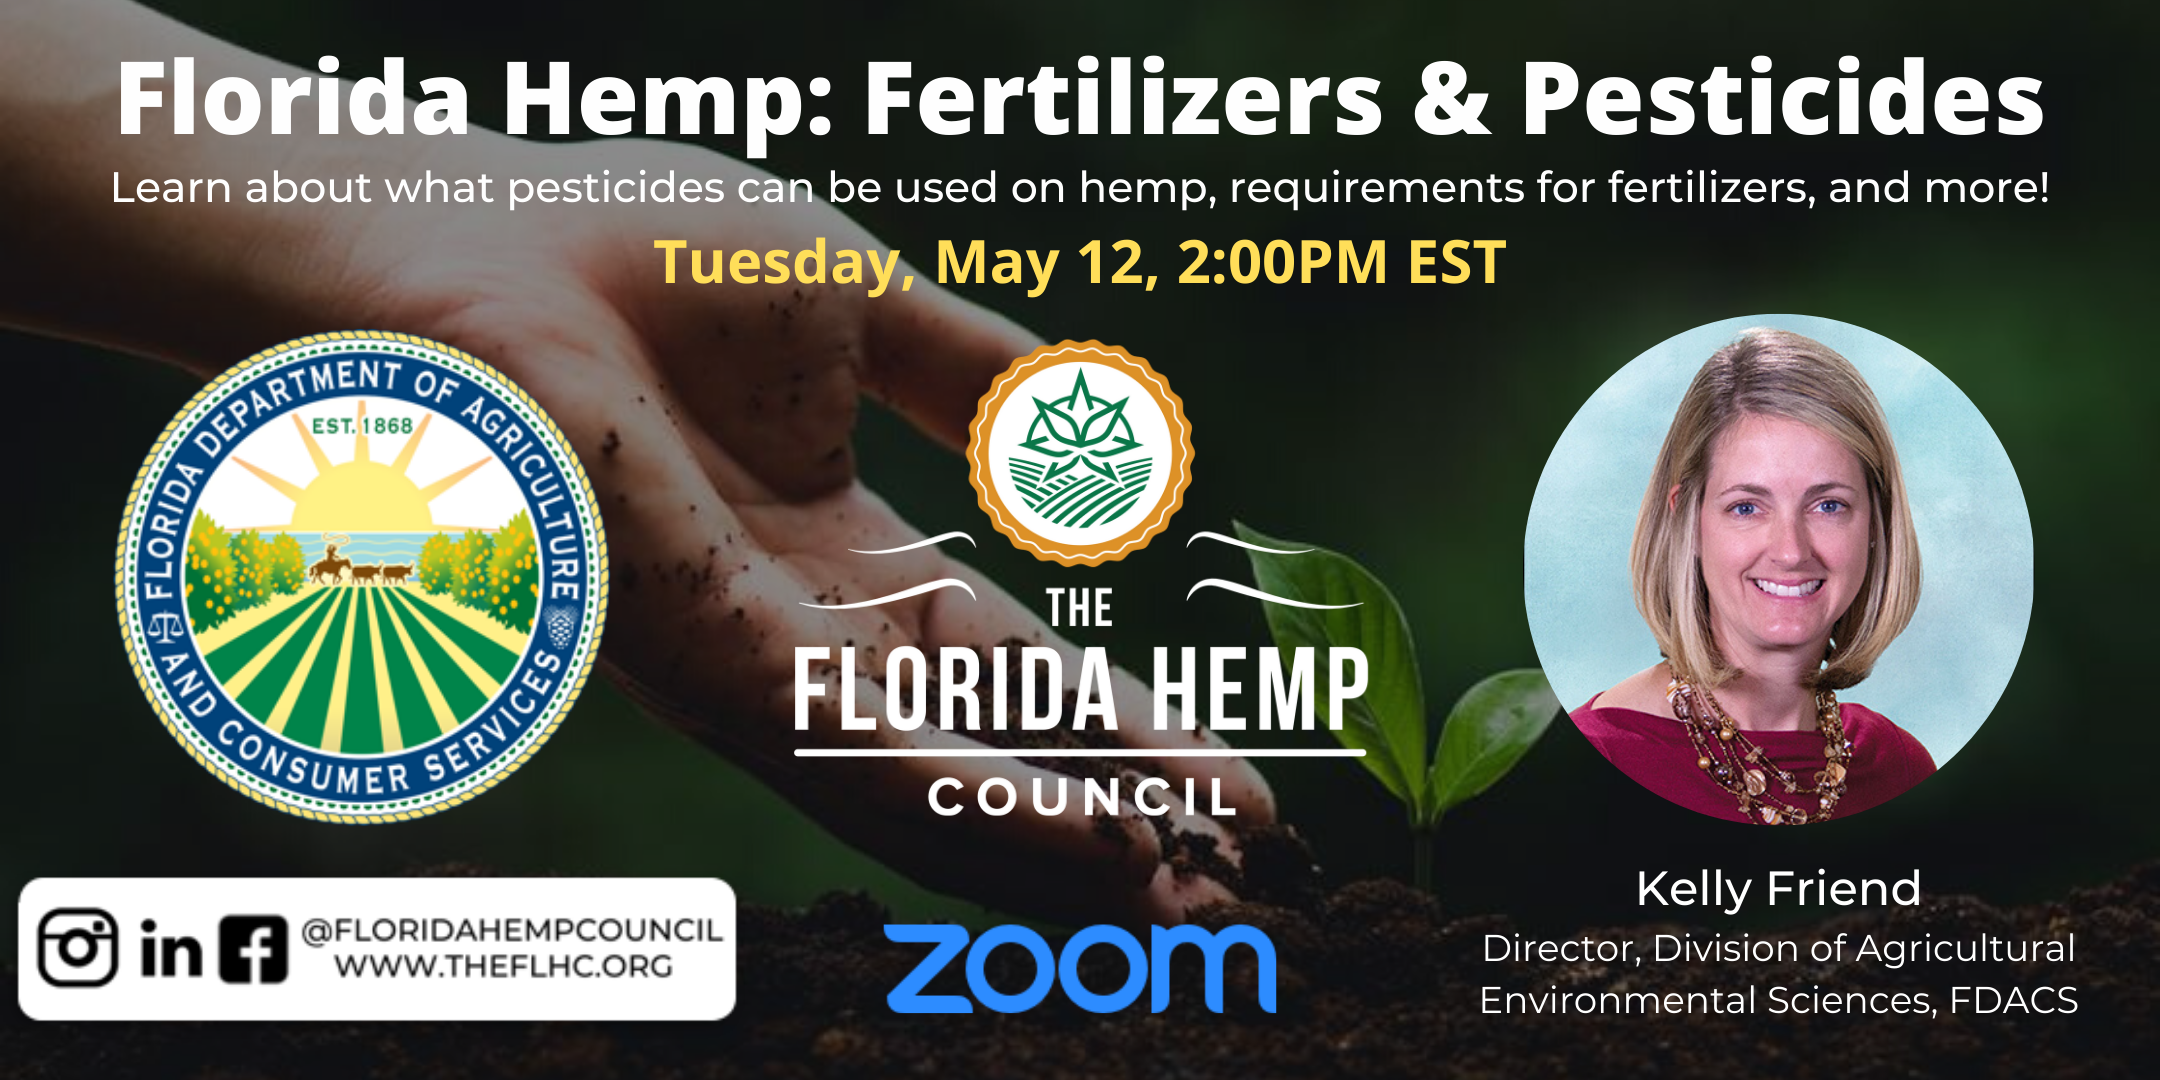 Florida Hemp: Fertilizer & Pesticides with FDACS